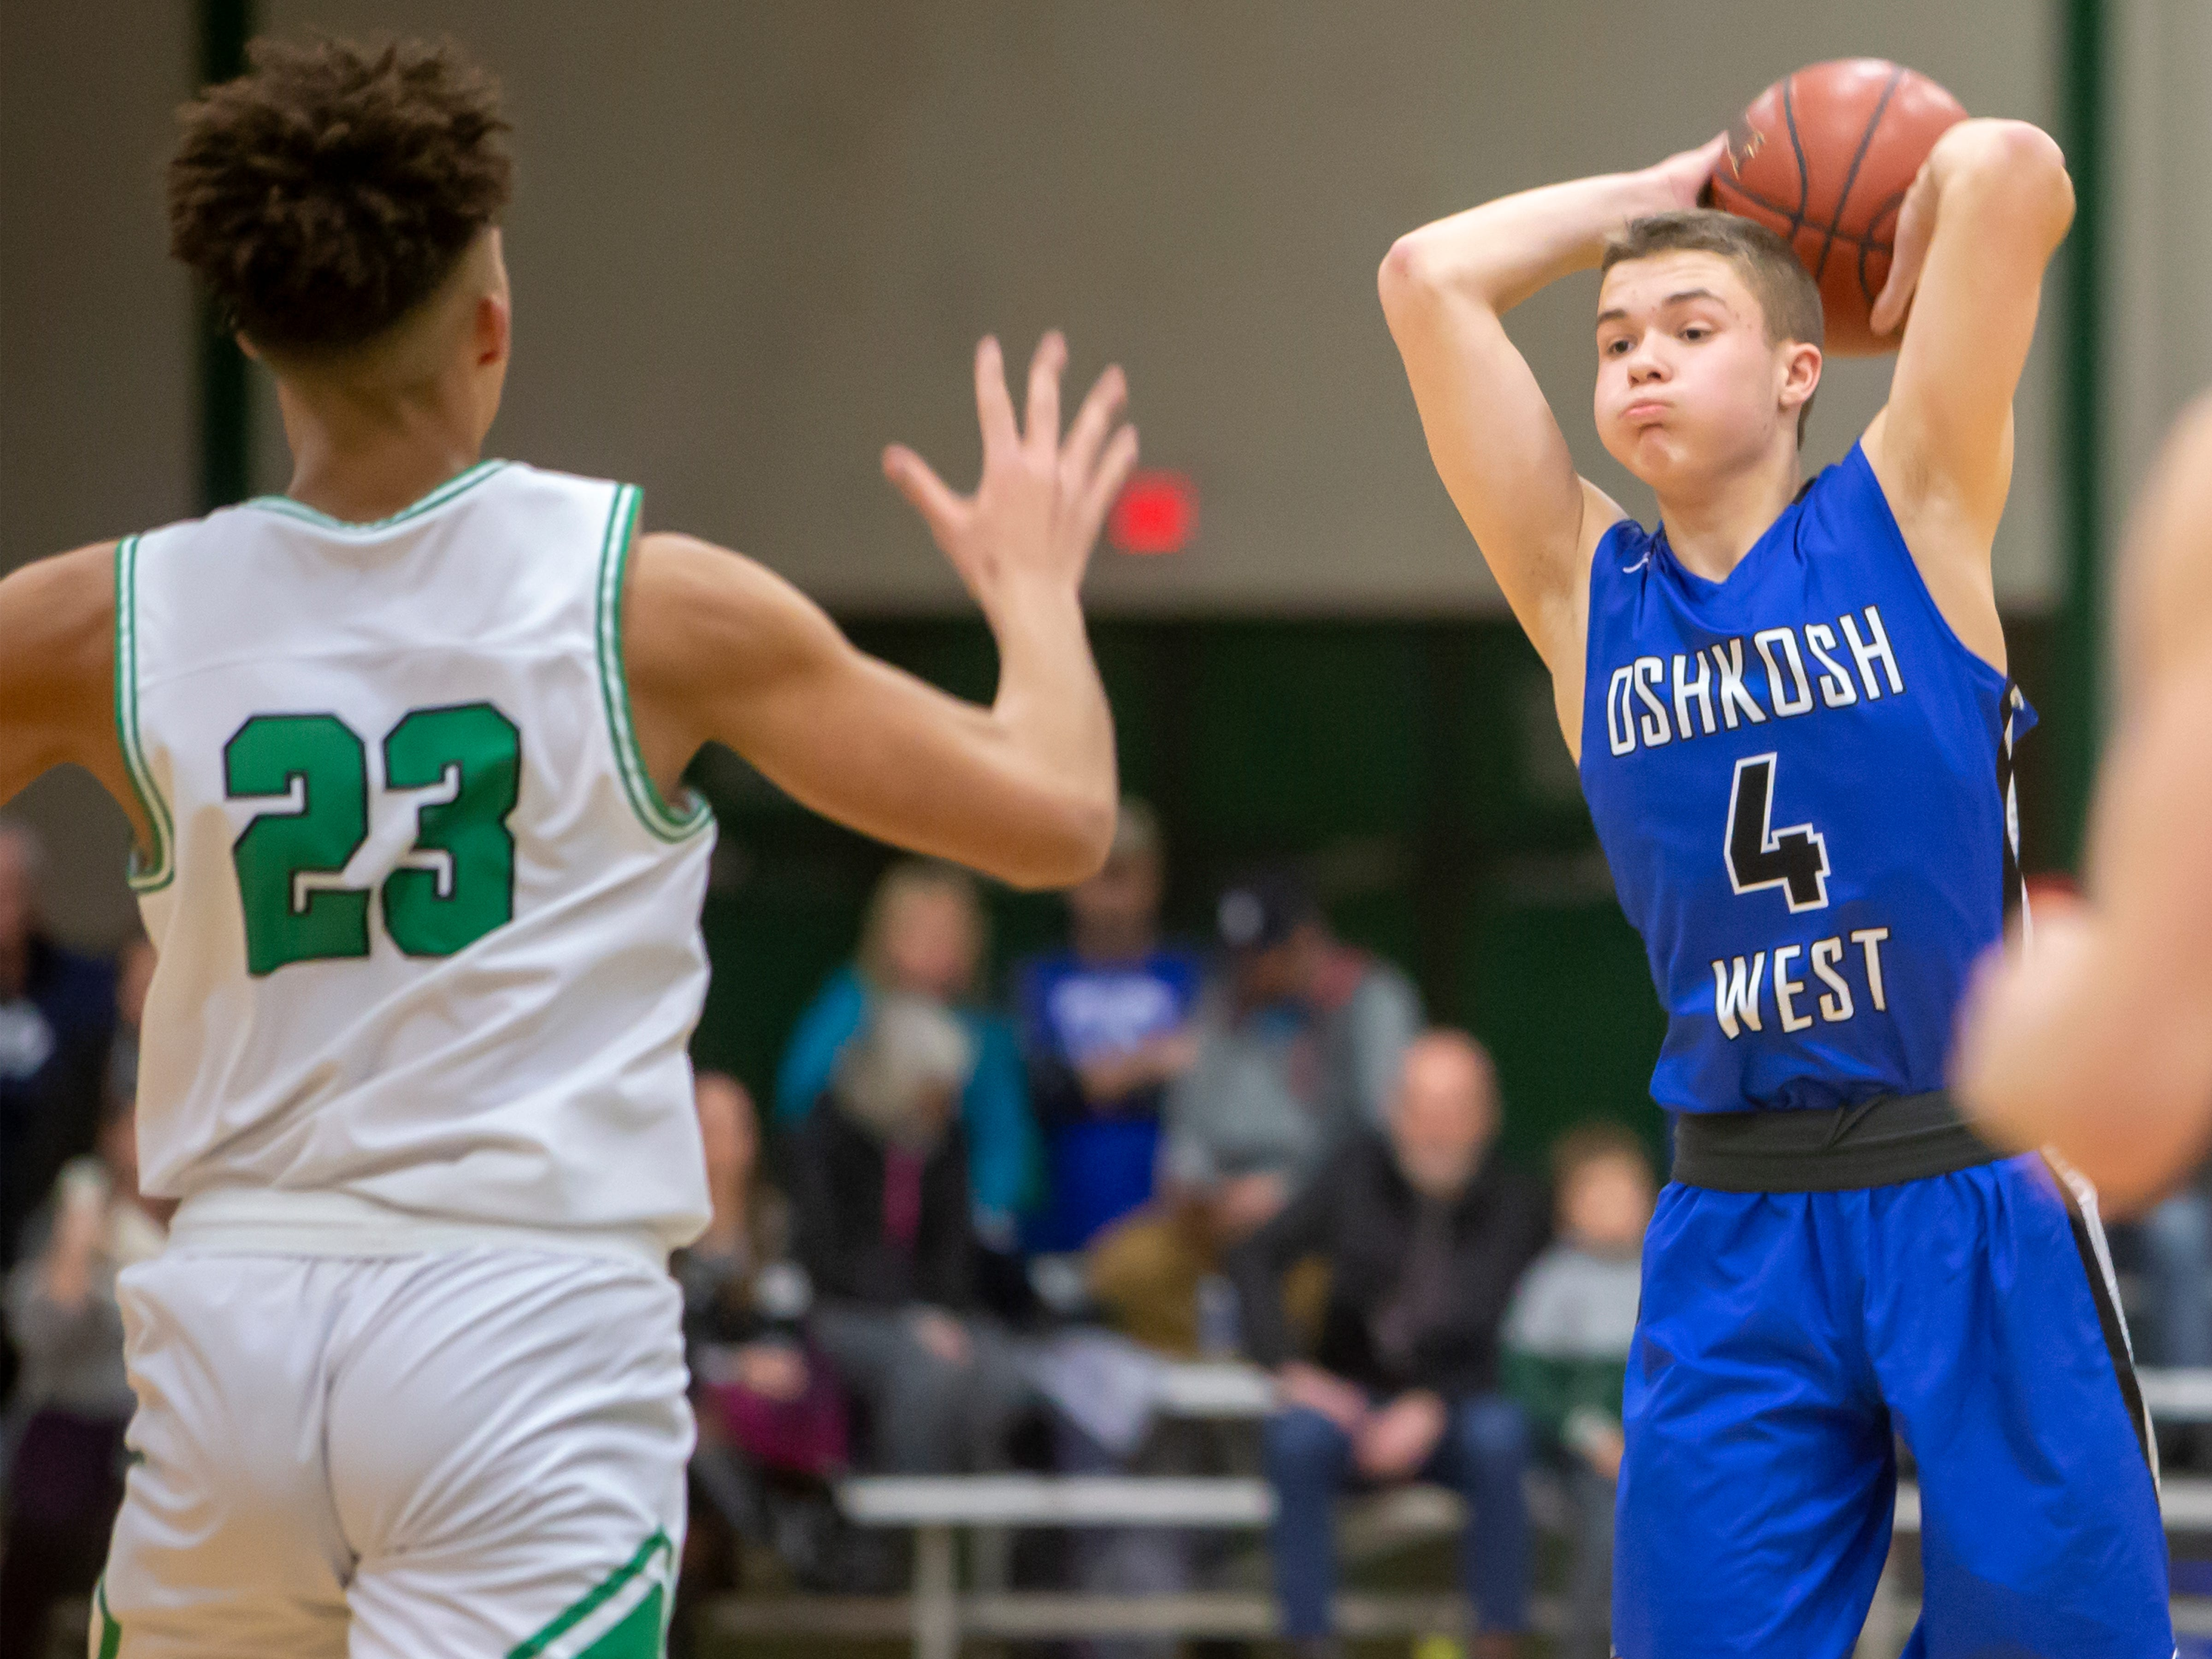 Oshkosh West's Riley Frey throws a pass playing against the Spartans at the Oshkosh North High School on Tuesday, Jan. 8, 2019.